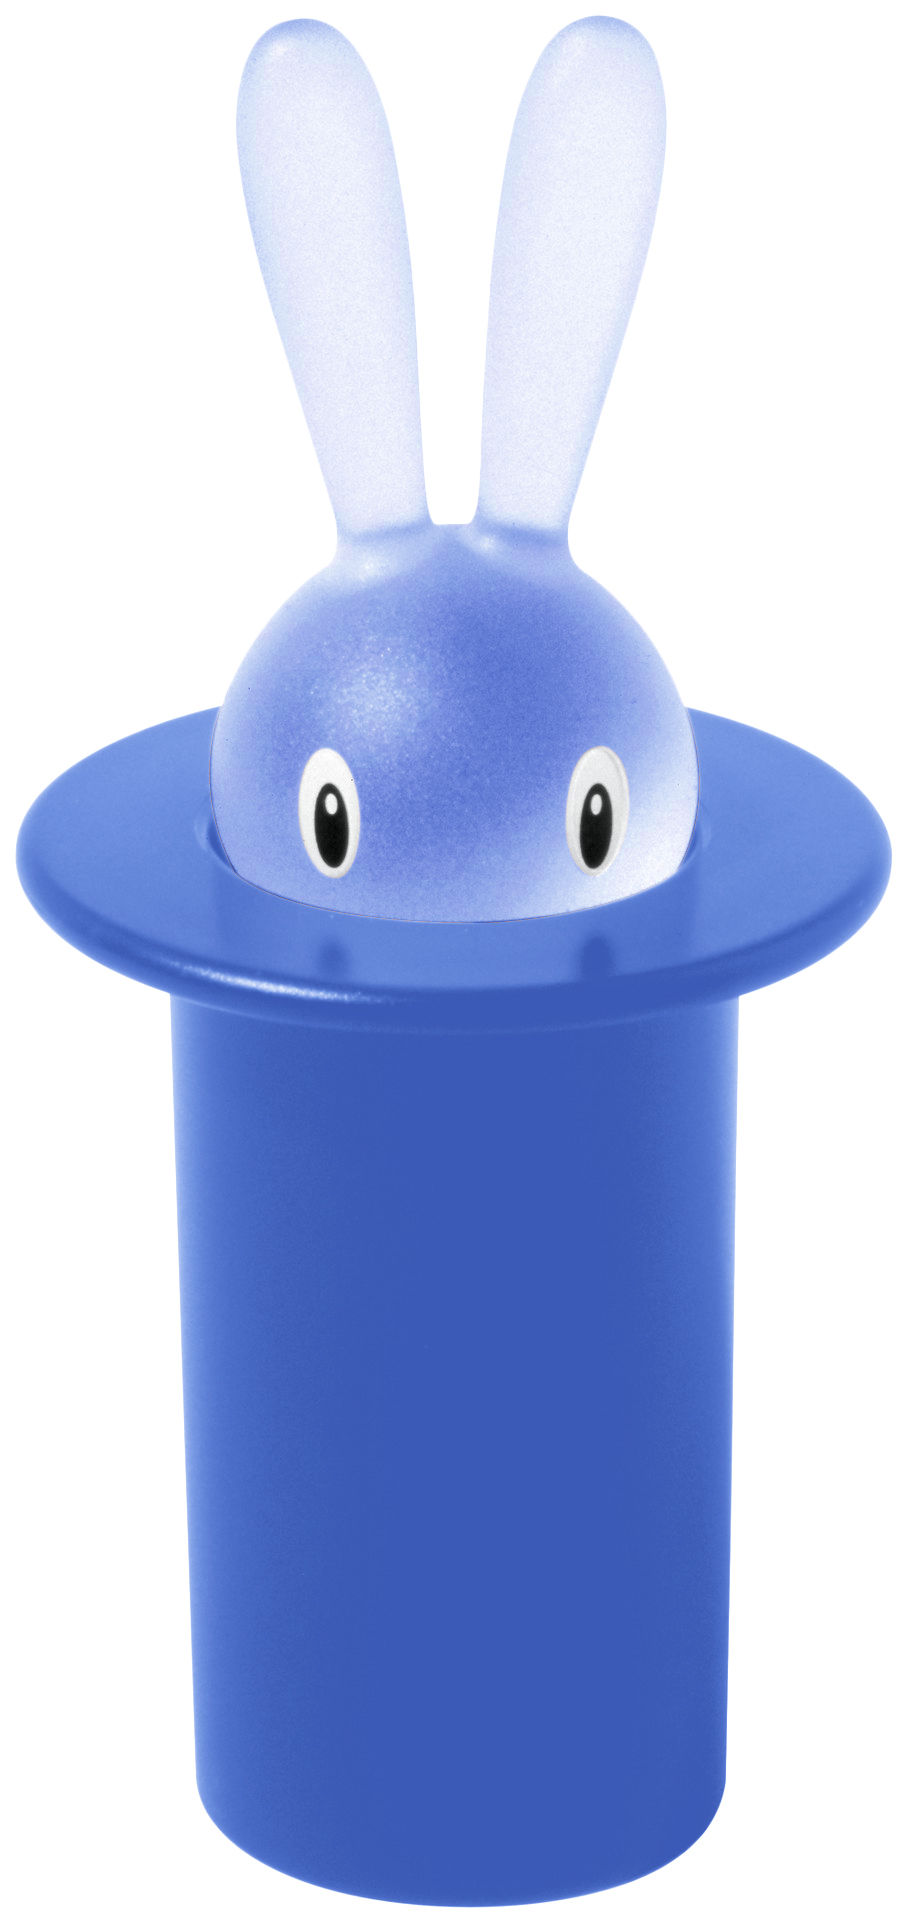 Cucina - Fun in the Kitchen - Porta stuzzicadenti Magic Bunny di A di Alessi - Blu - Materiale plastico